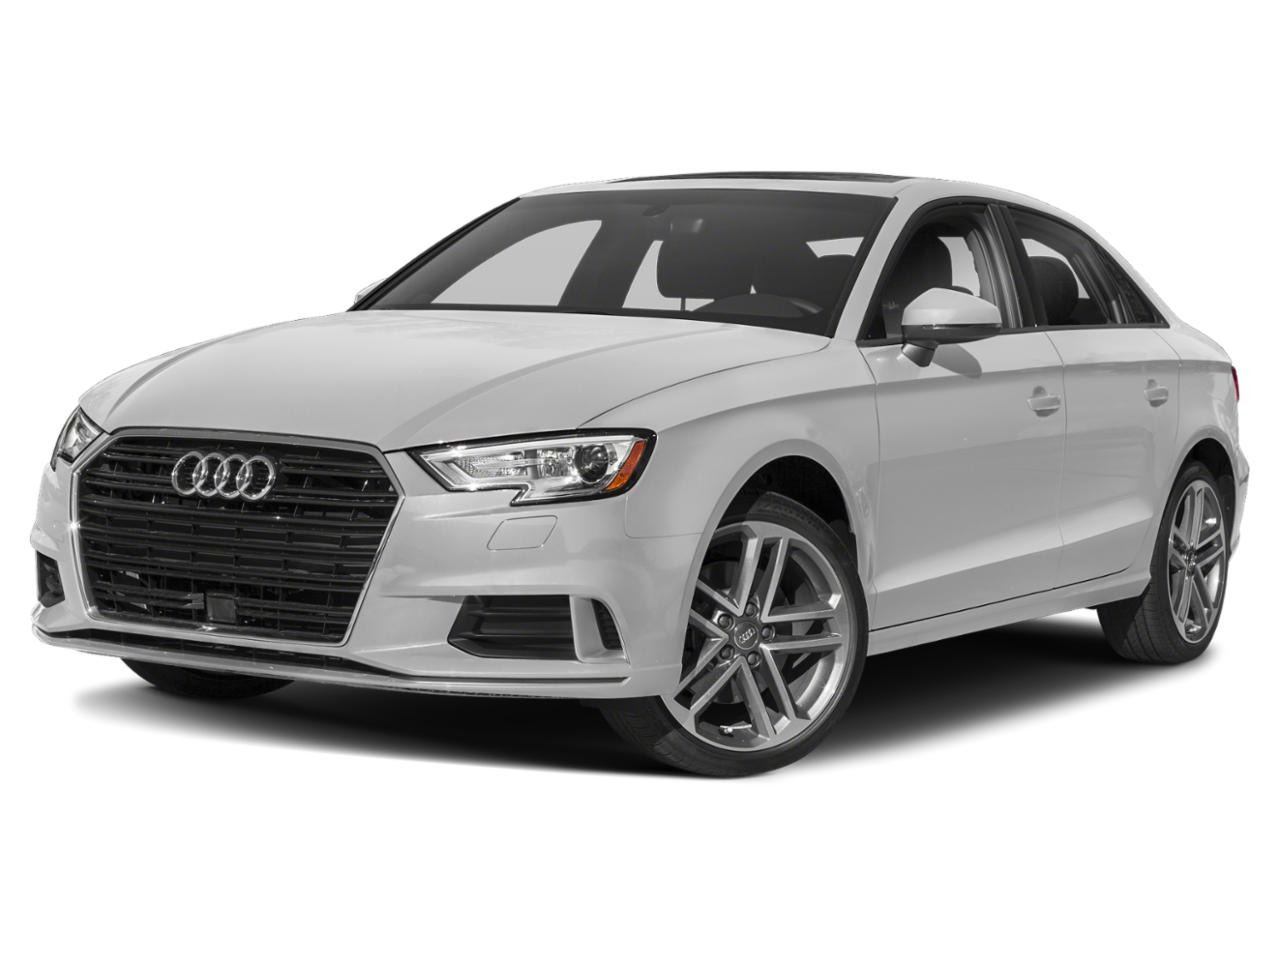 2019 Audi A3 Sedan Vehicle Photo in Pleasanton, CA 94588